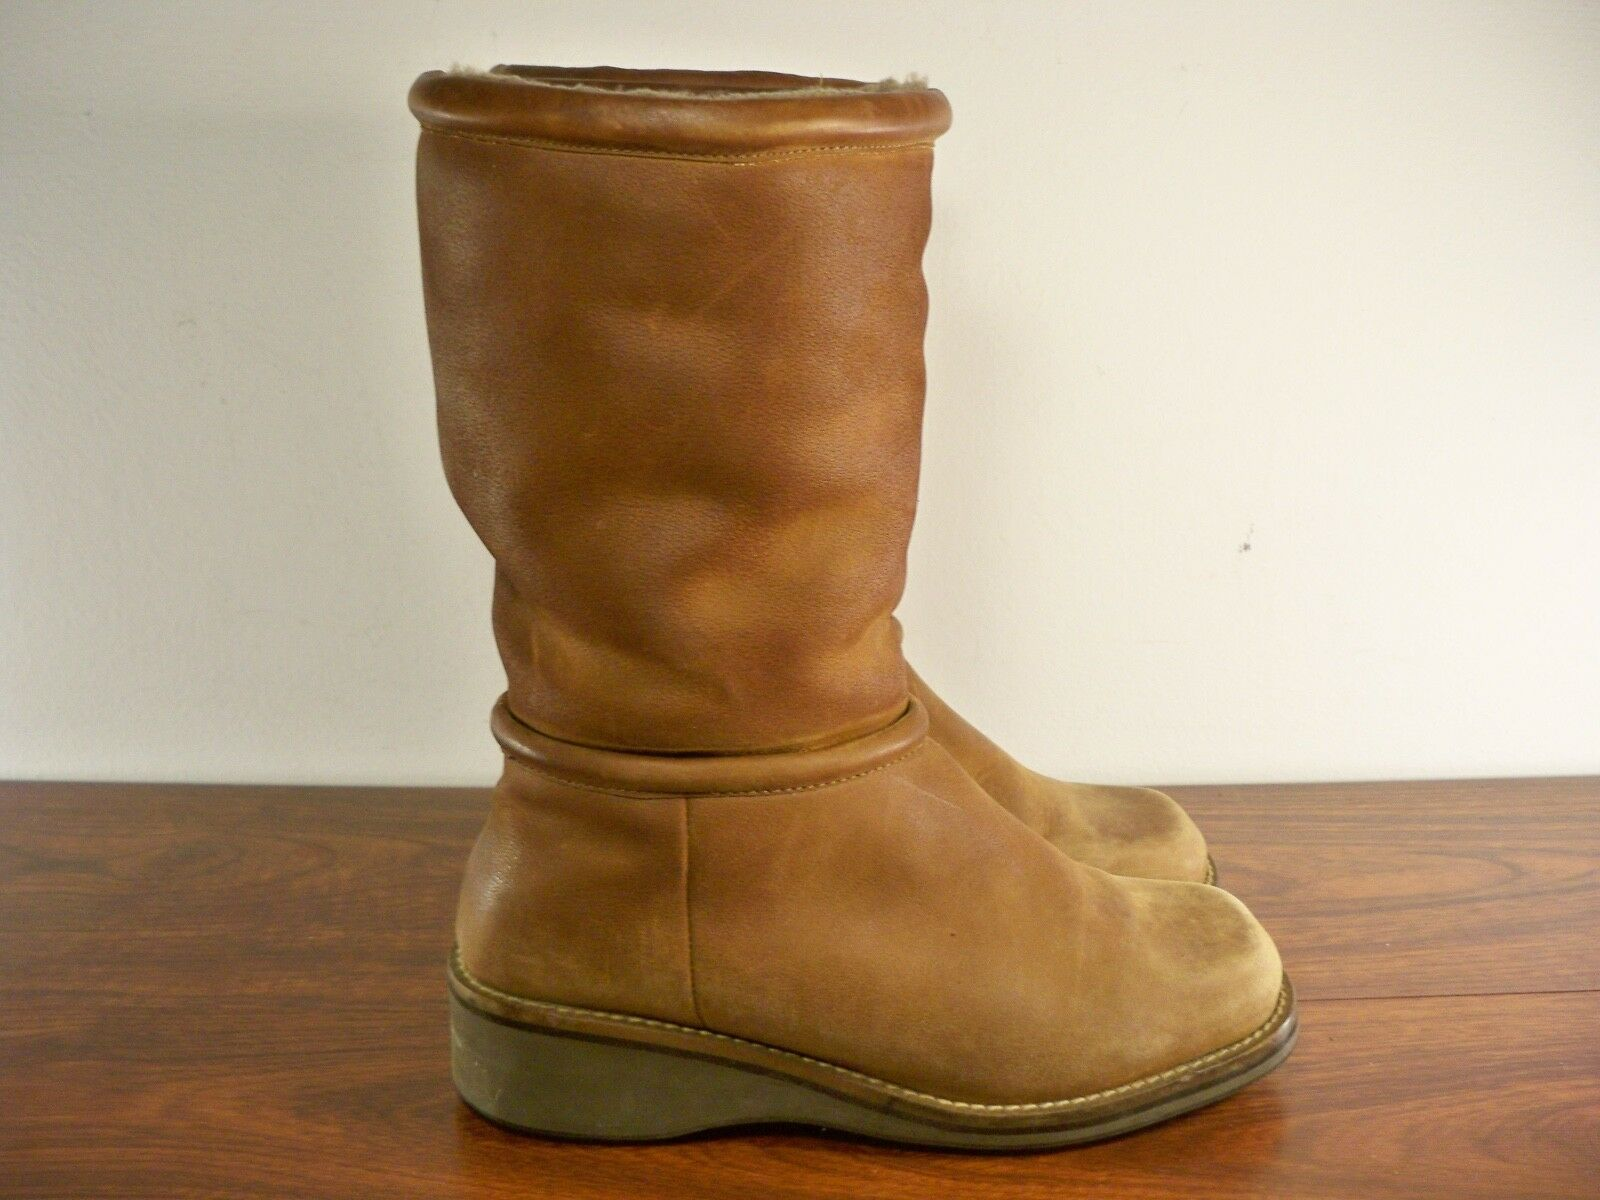 Cole Haan F6321 Women's Brown Sherpa Lined Mid Wedge Leather Boots Size 7.5 B